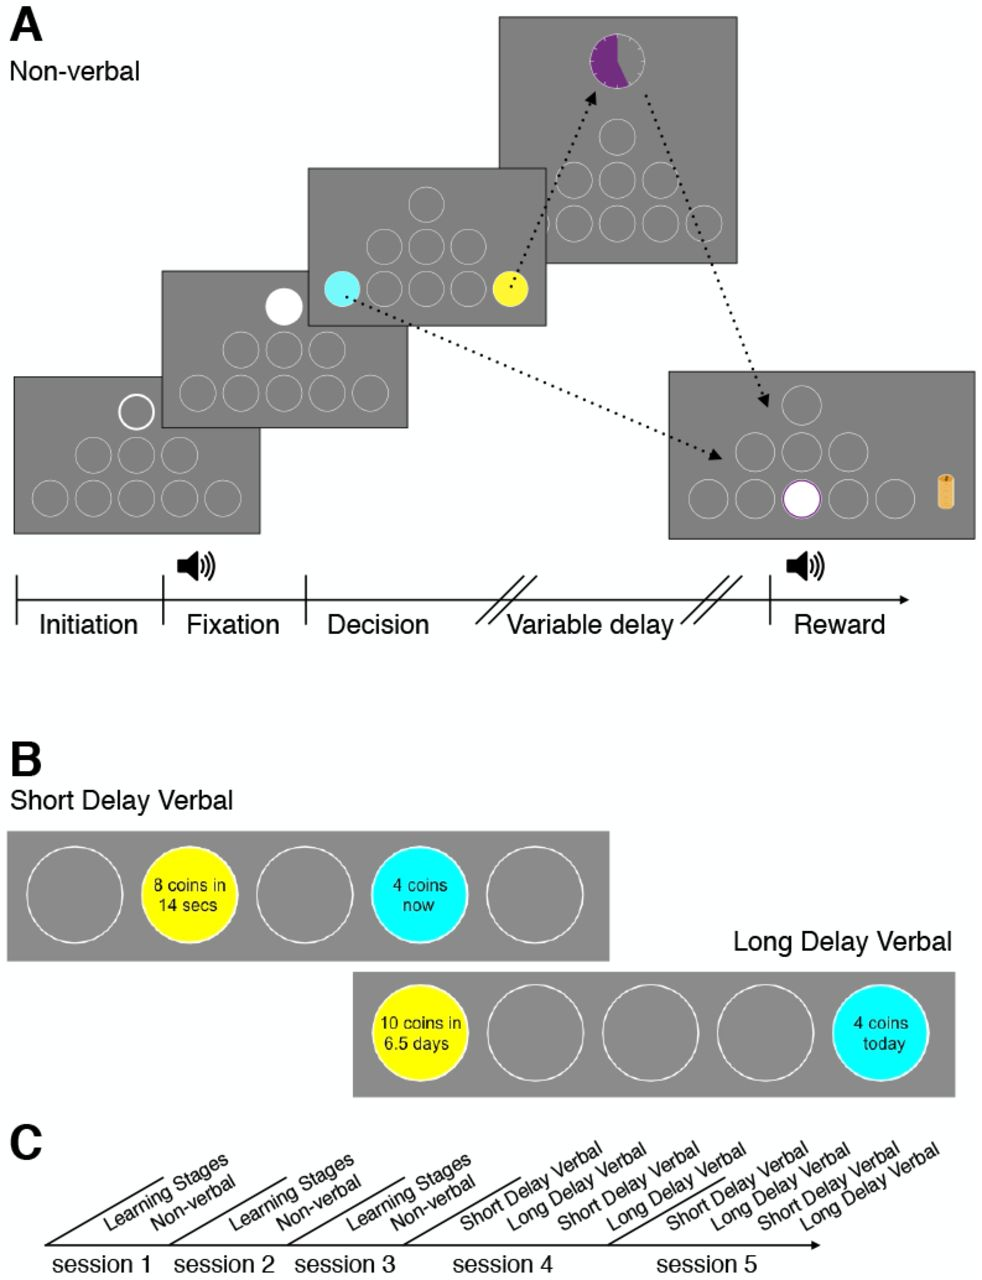 Time preferences are reliable across time-horizons and verbal vs